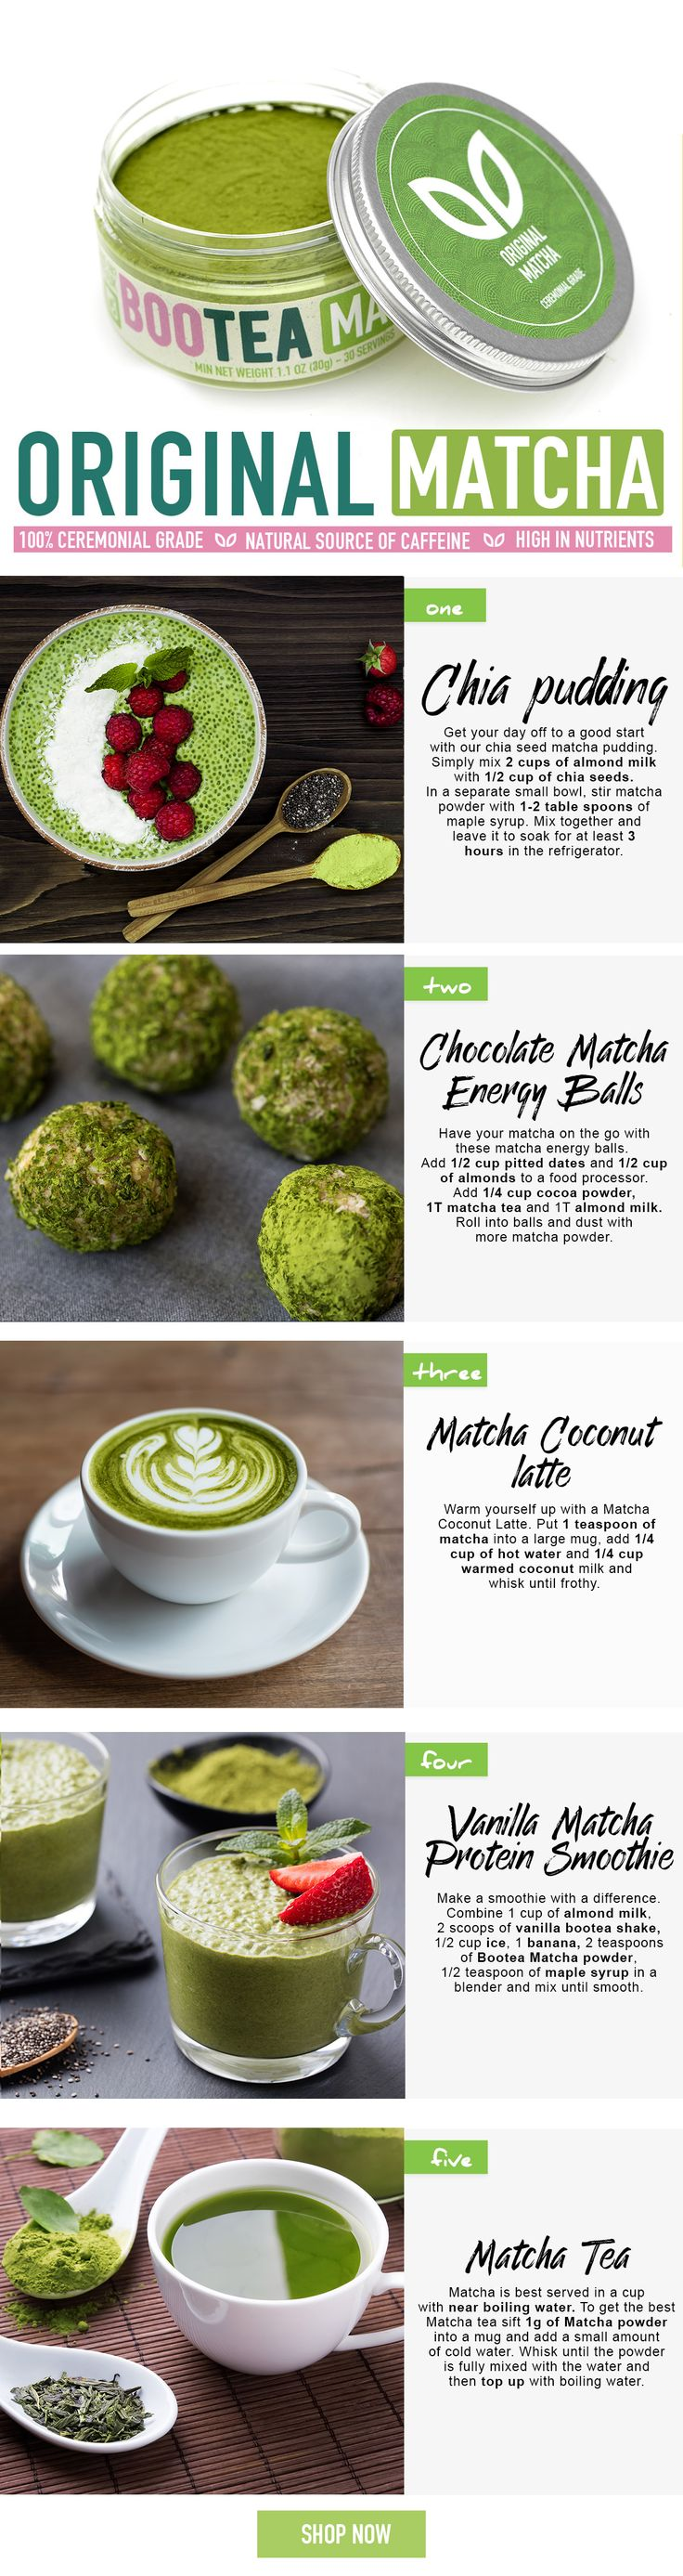 Not sure what to make with your new Bootea Matcha powder? Why not try making chia pudding, or the chocolate energy protein balls? Matcha is Perfect as a tea, or to boost the flavour and nutrient profile of shakes and smoothies. Our Matcha green tea is 100% ceremonial grade all the way from Japan.